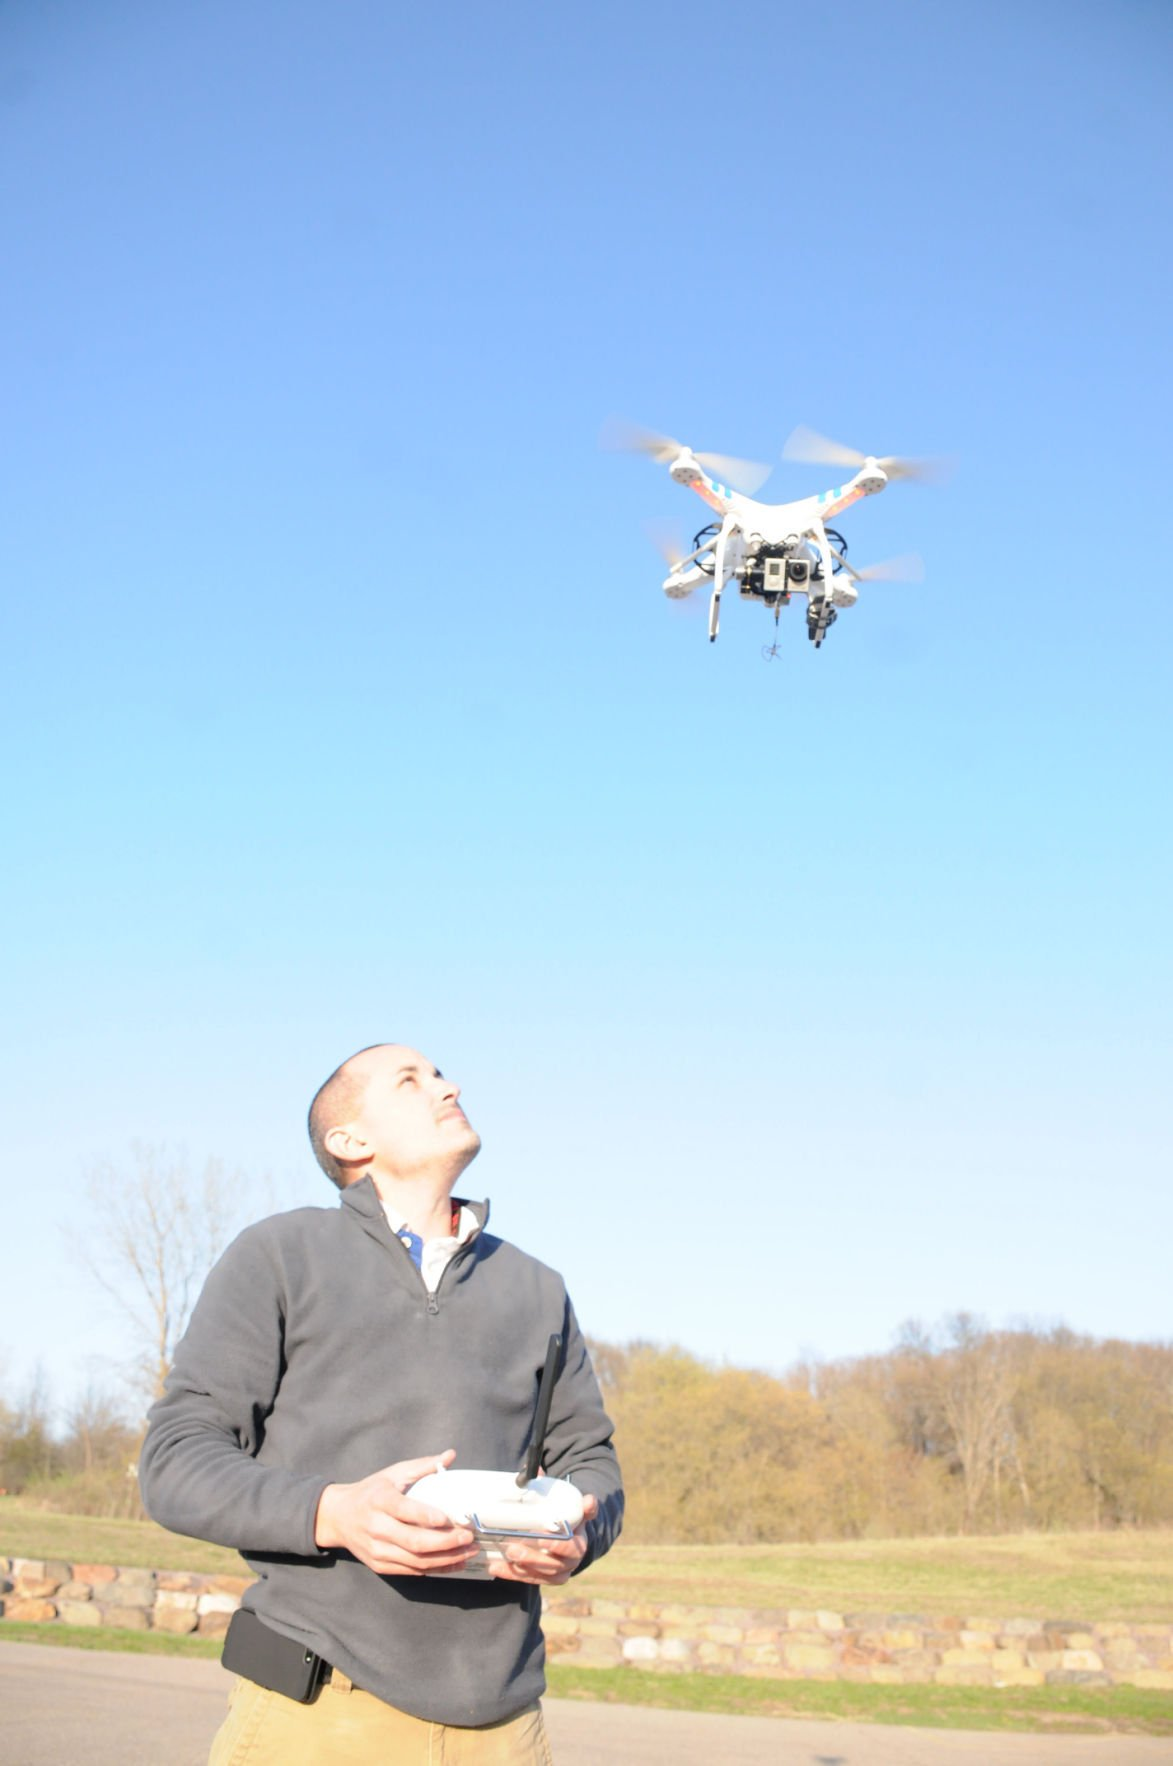 Battle of the drones: Technology creates new opportunities, concerns